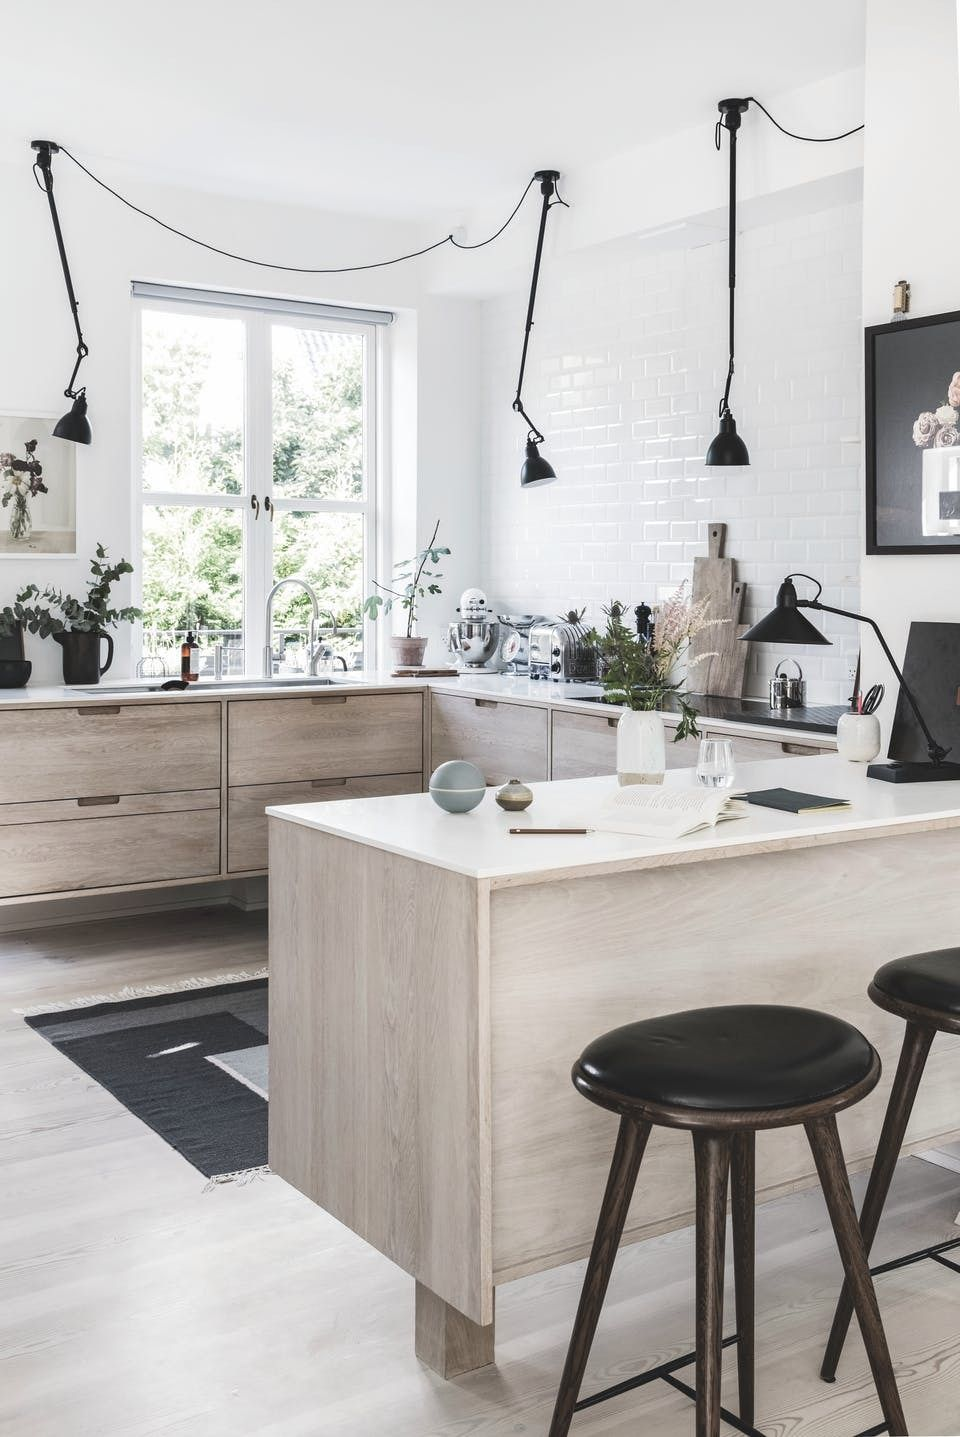 Scandinavian kitchen with breakfast bar | Kitchen | Pinterest ...